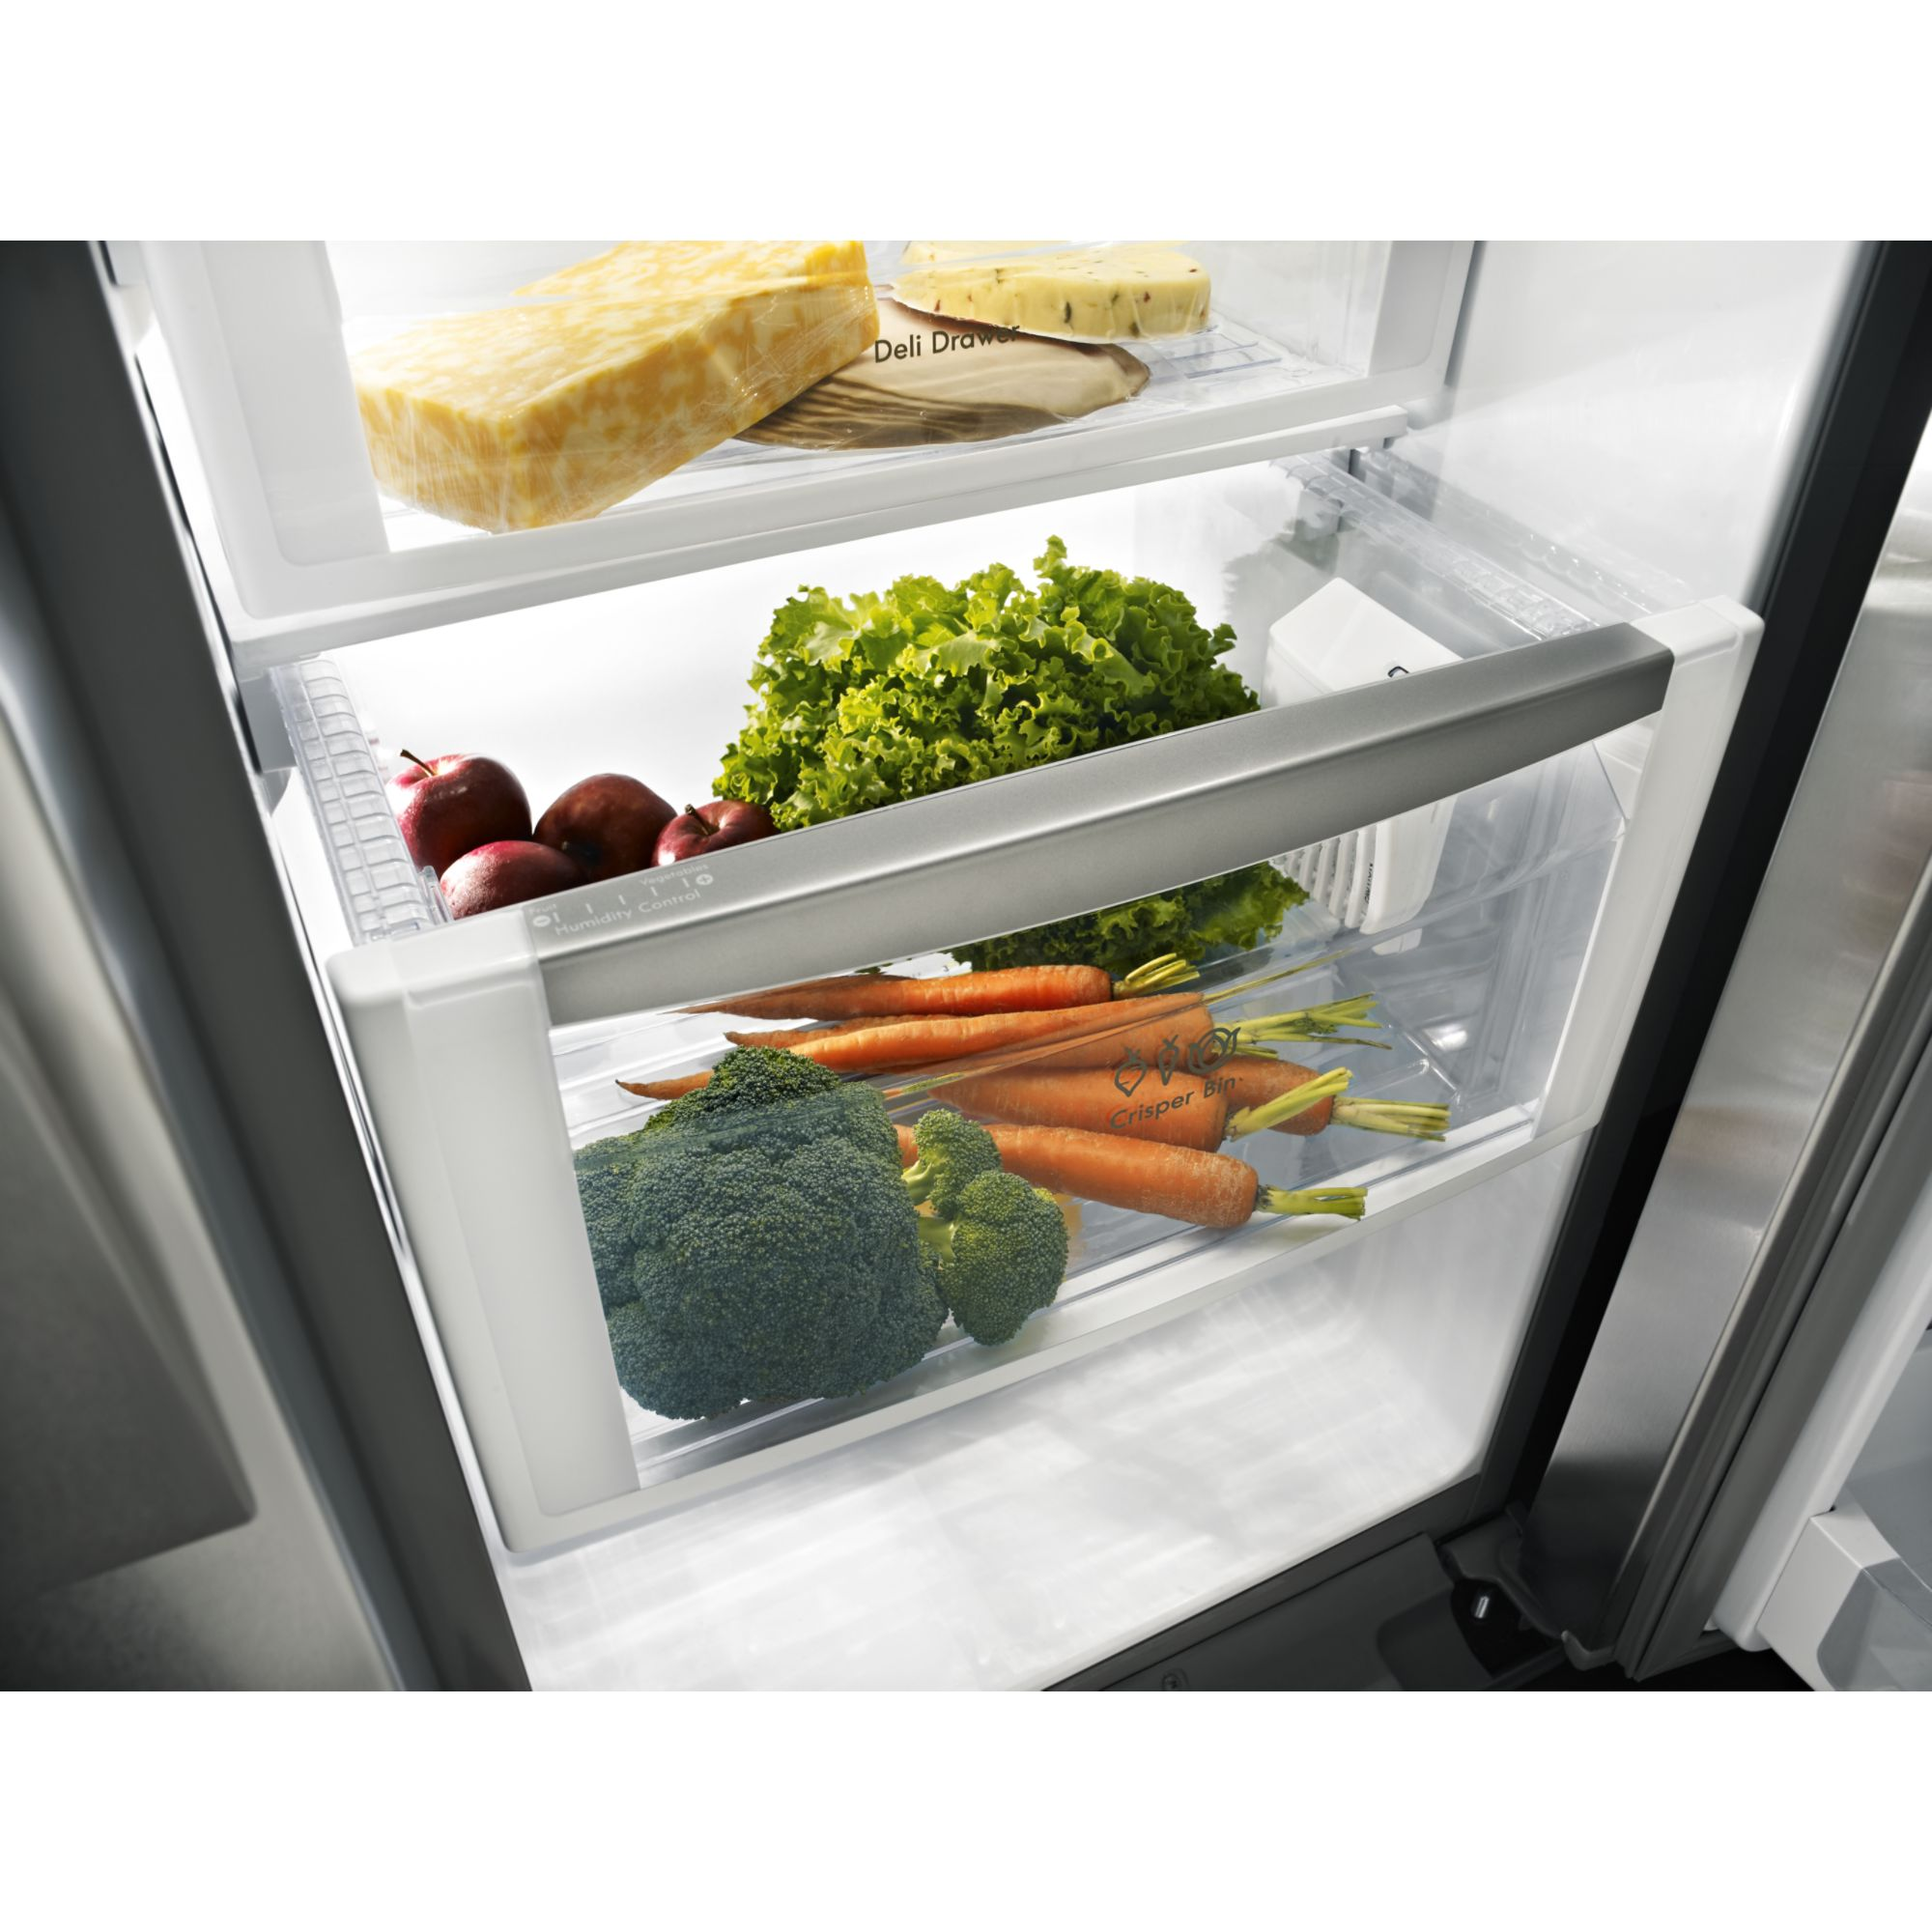 Kenmore Elite 24.5 cu. ft. Side-by-Side Refrigerator w/ Measured Fill - Stainless Steel